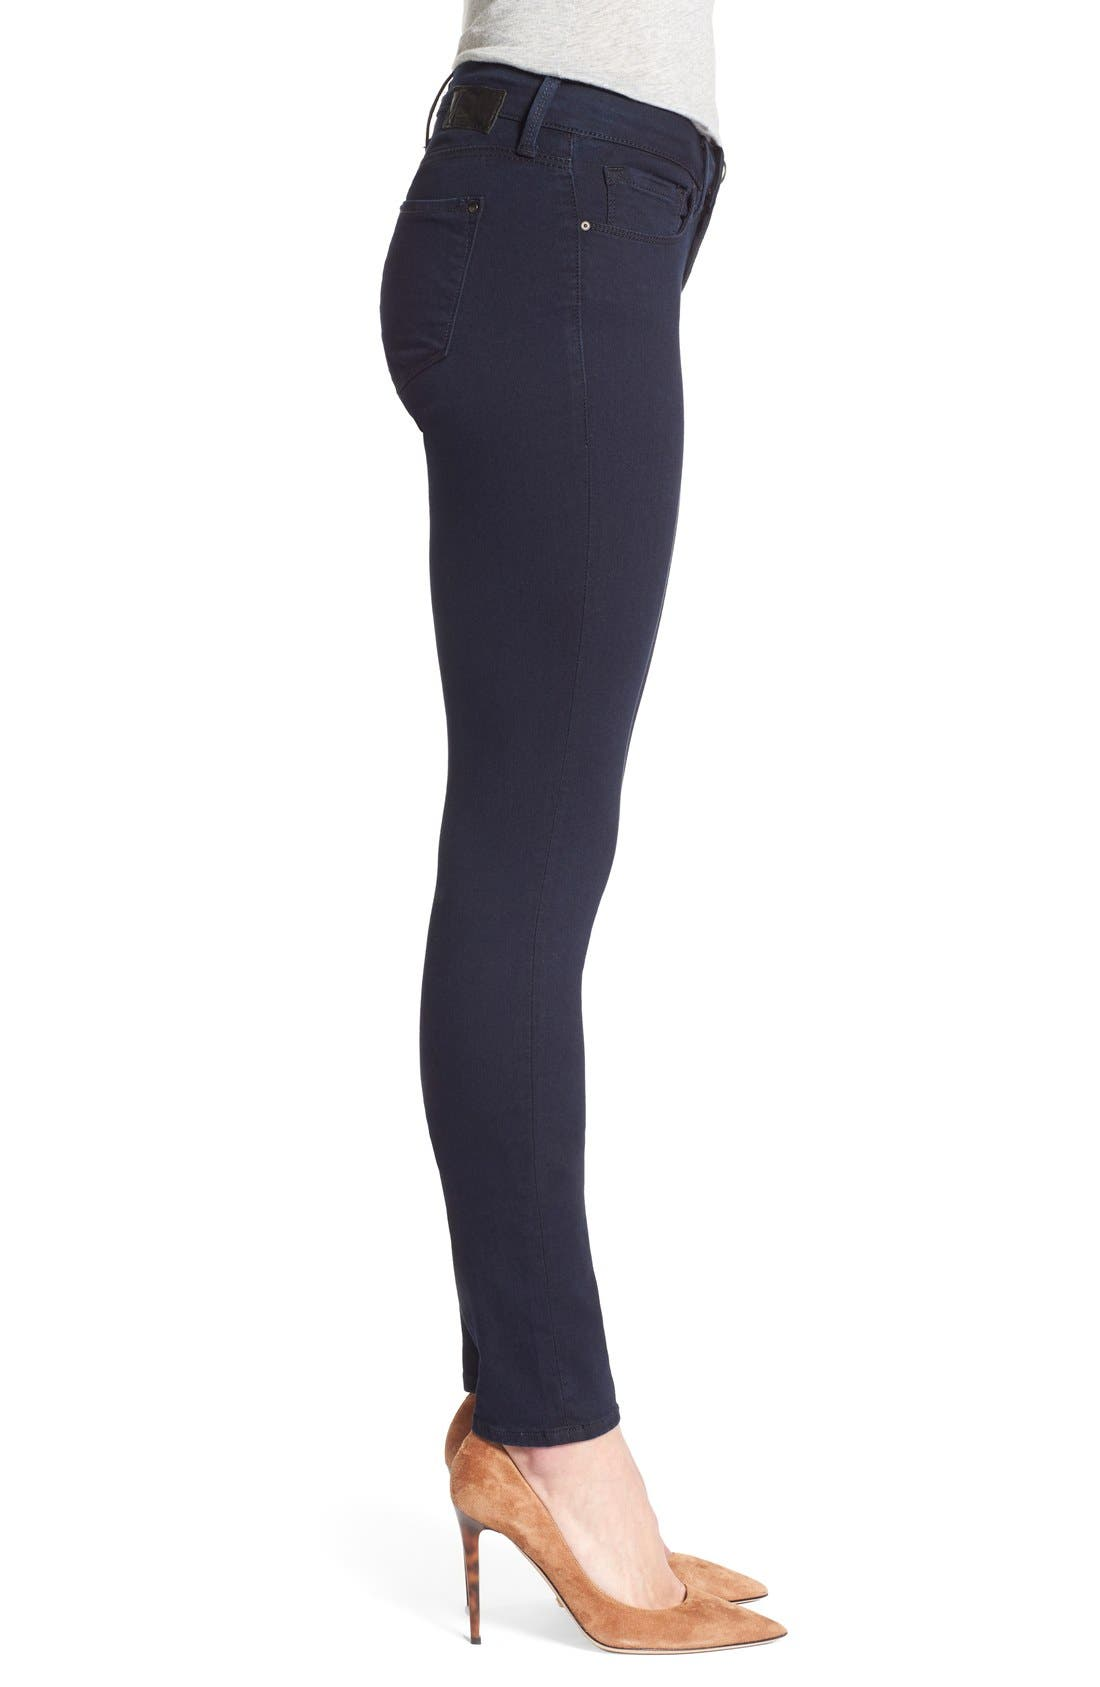 Alternate Image 3  - Mavi Jeans 'Serena' Stretch Skinny Jeans (Dark Shanti) (Regular & Petite)